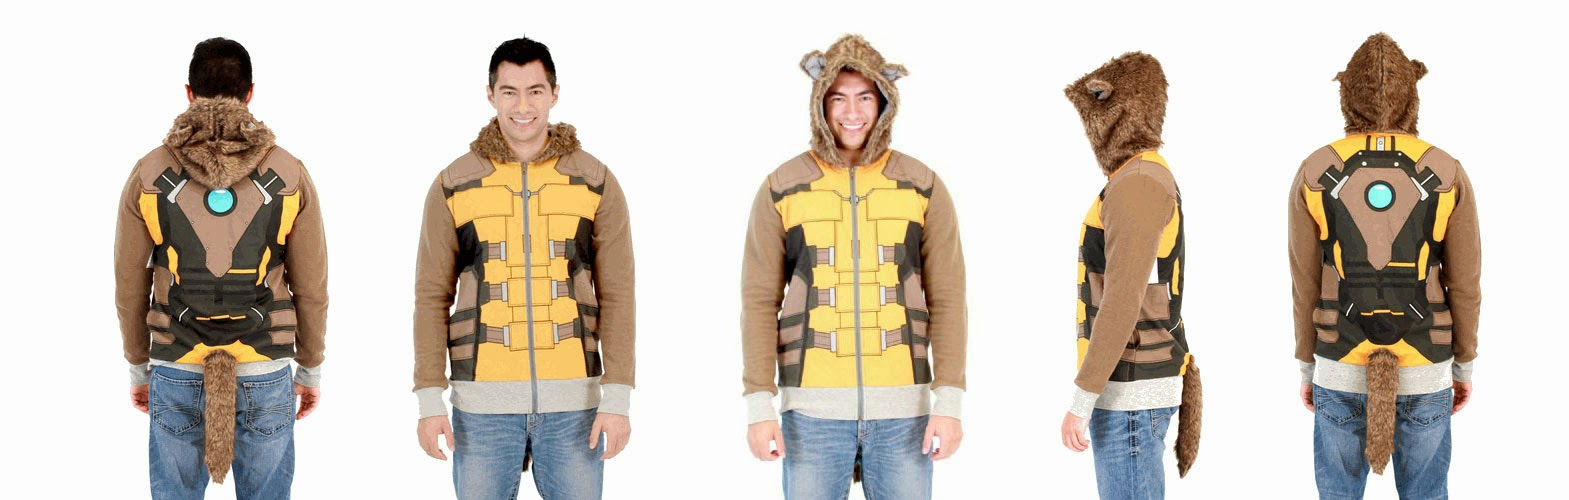 Marvel merchandise hoodies Rocket Raccoon costume